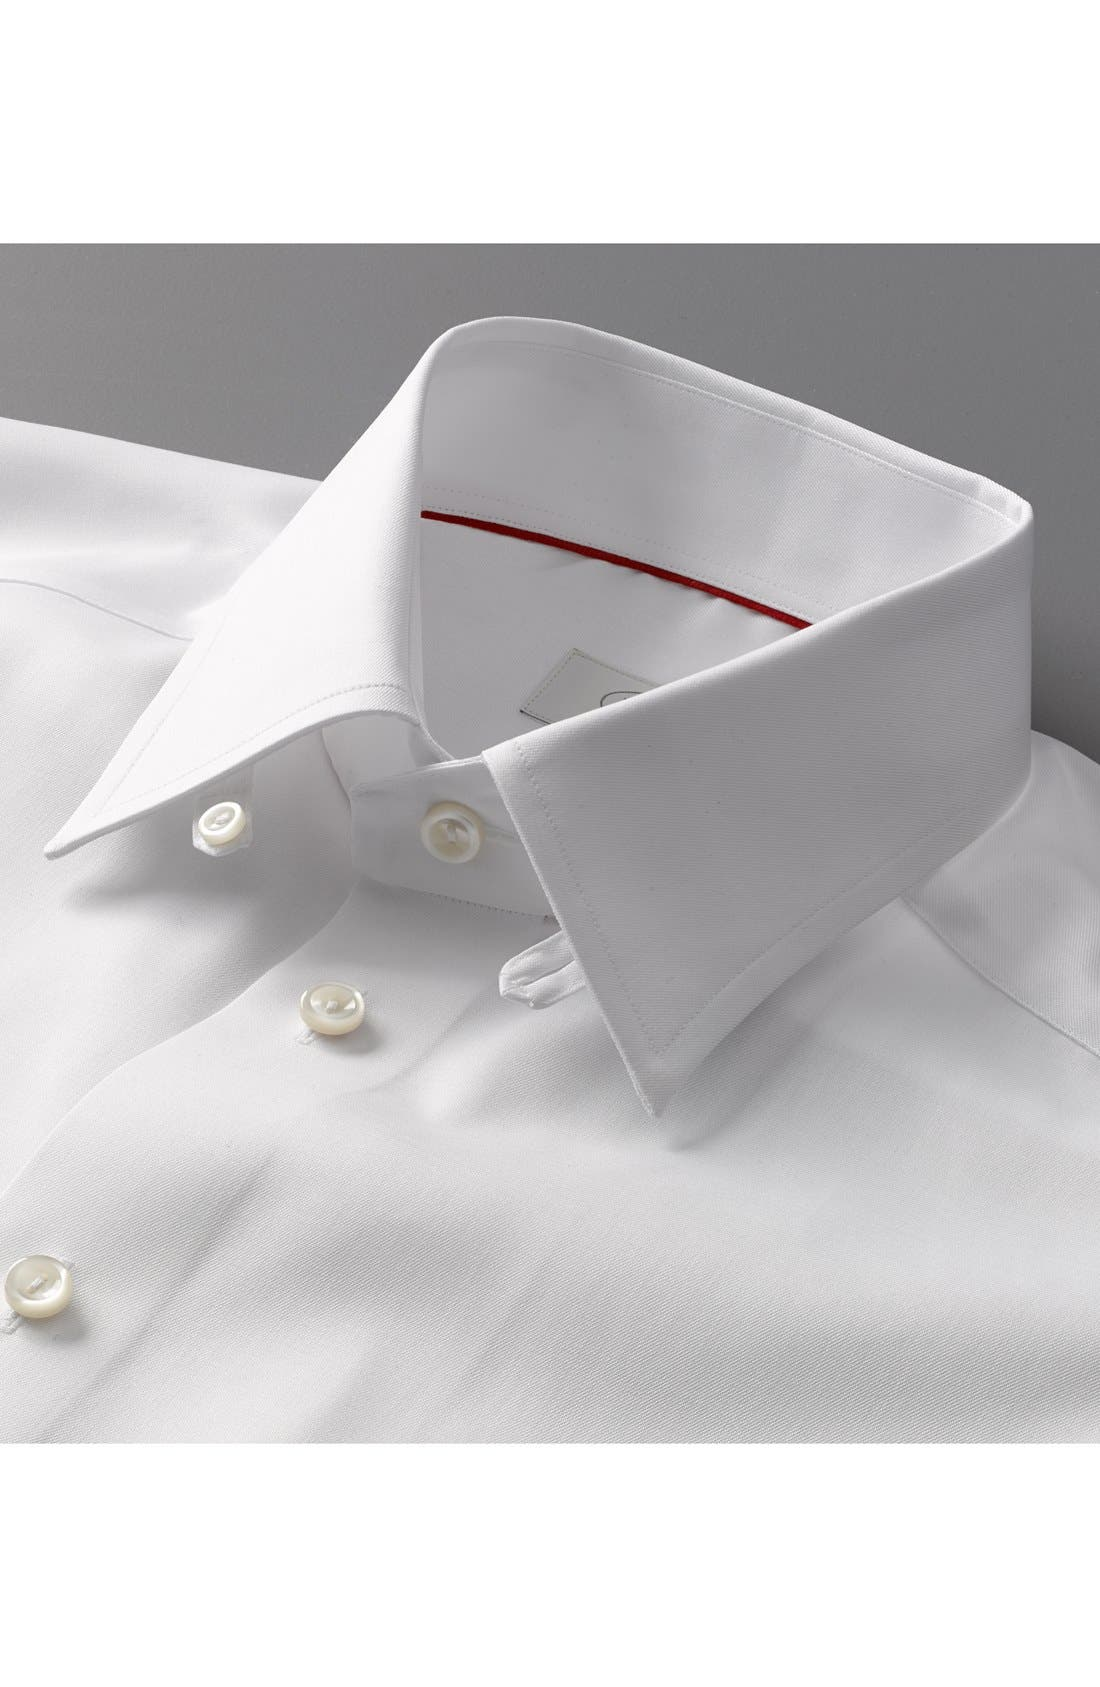 Alternate Image 3  - Eton Slim Fit Dress Shirt